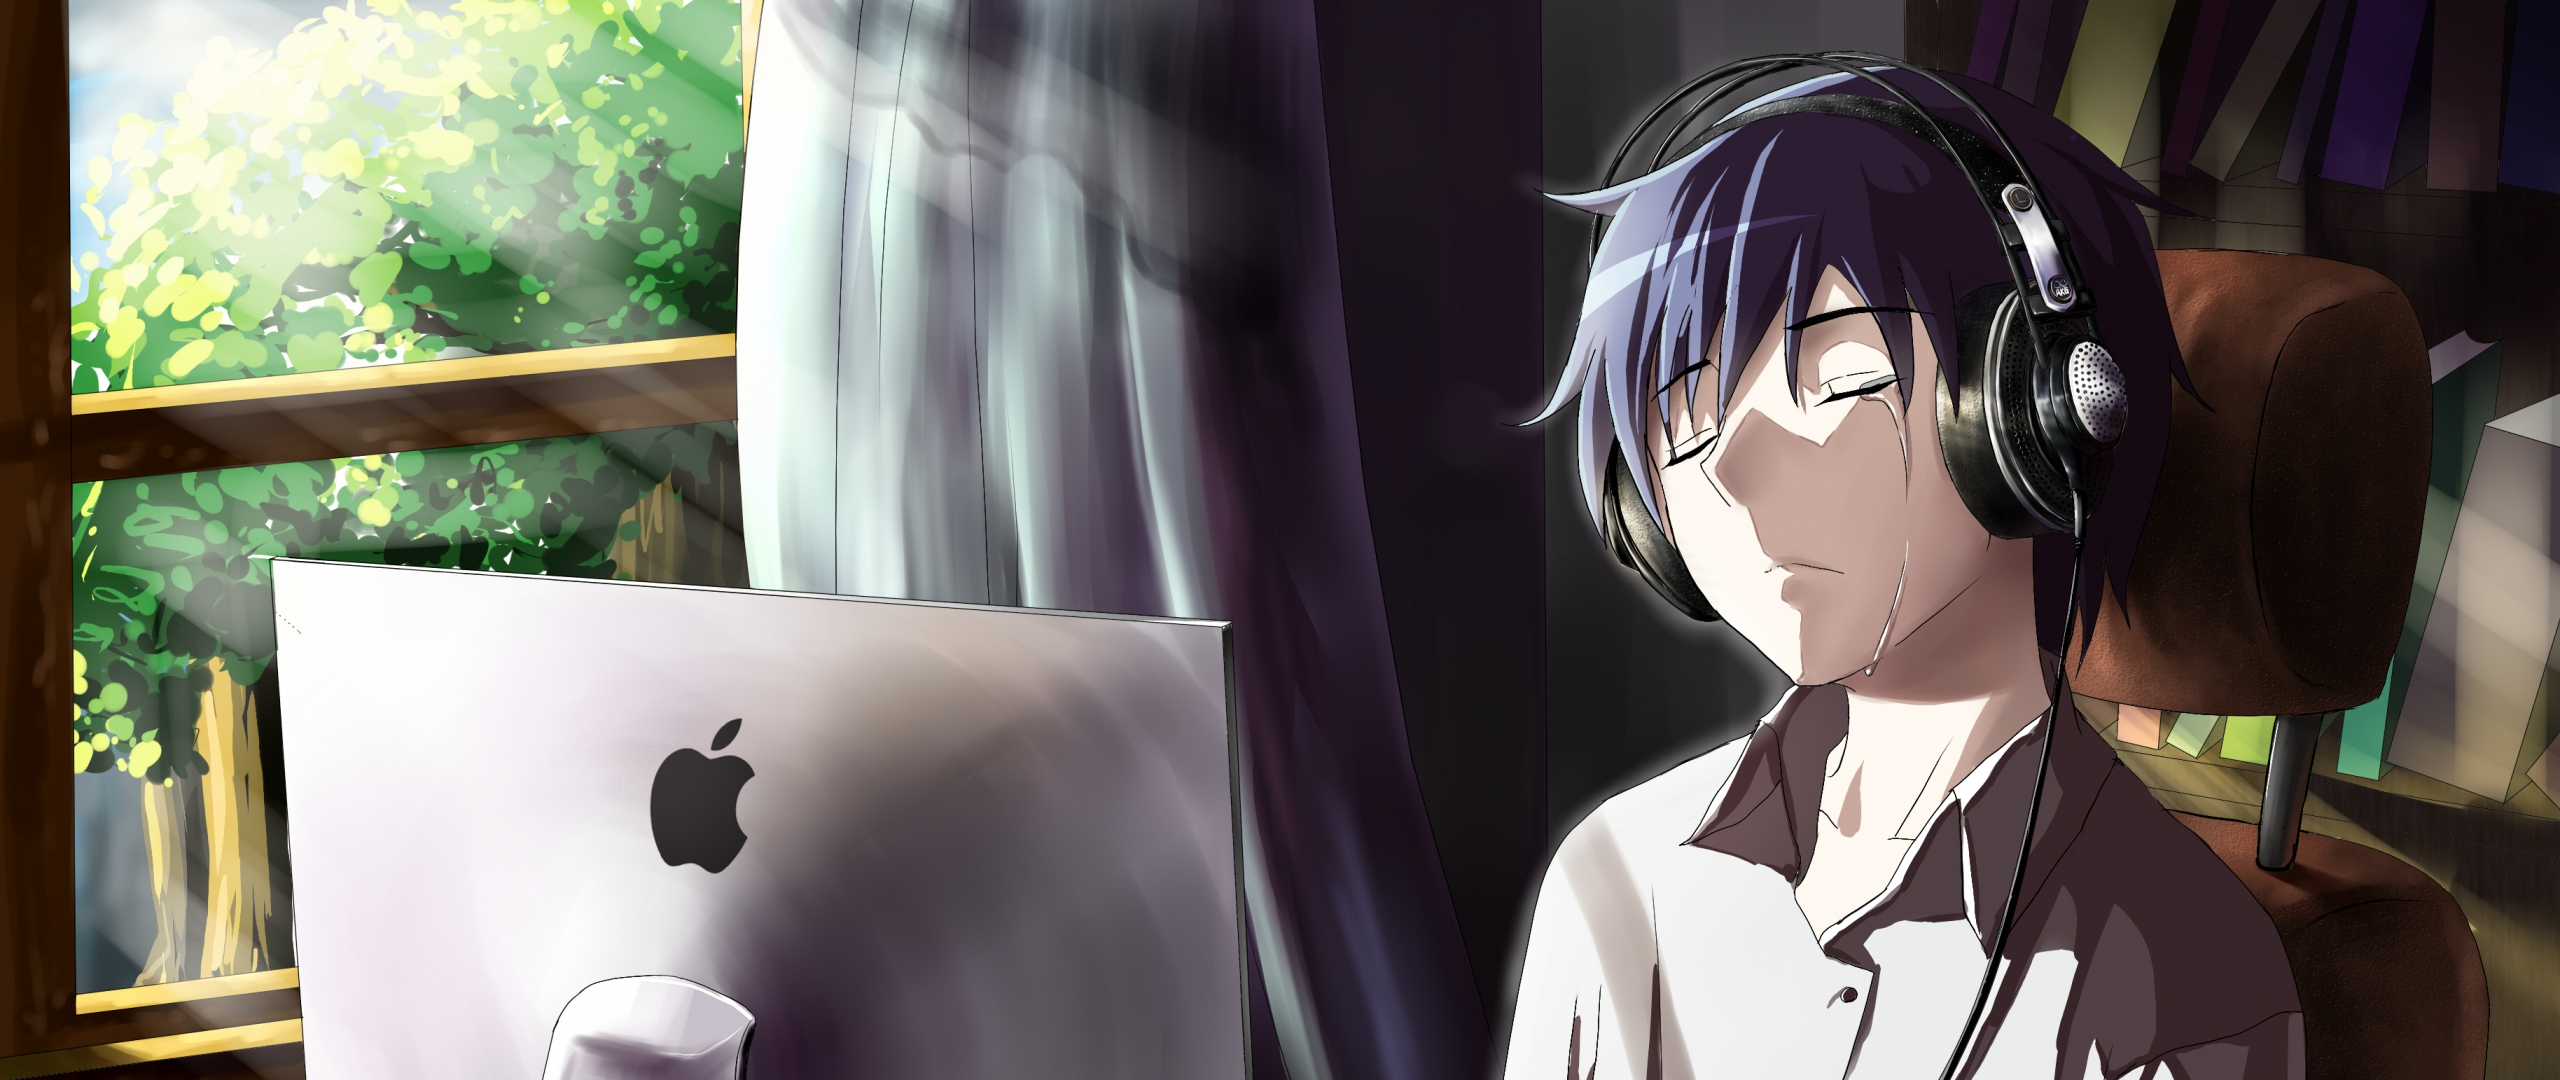 2048x1152 Anime Boy Crying In Front Of Apple Laptop